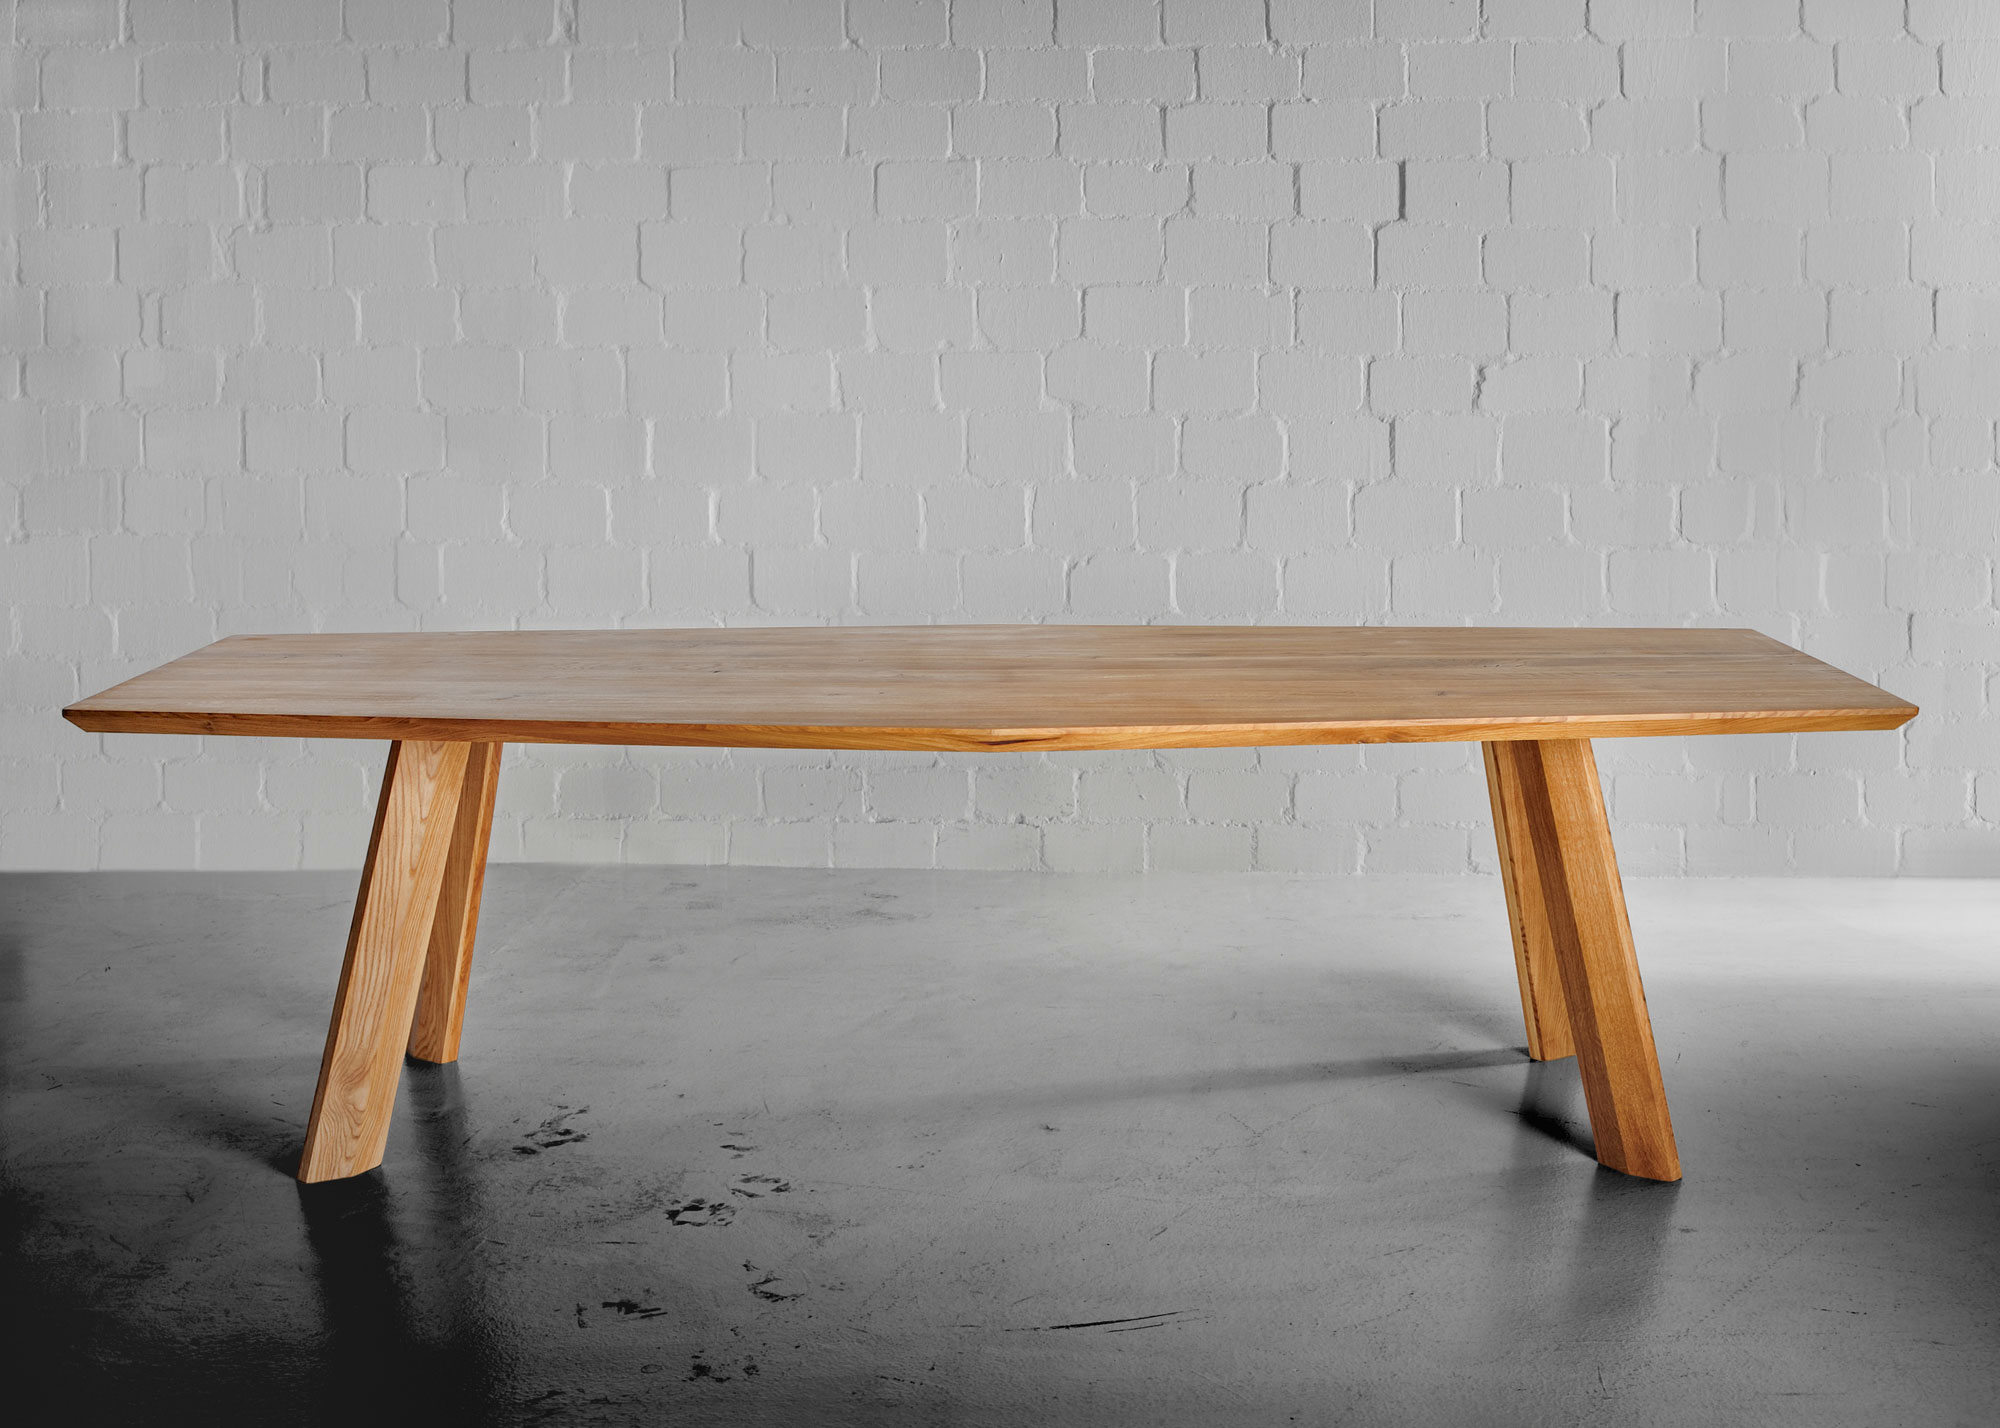 Designer Dining Table RHOMBI 4431 custom made in solid wood by vitamin design